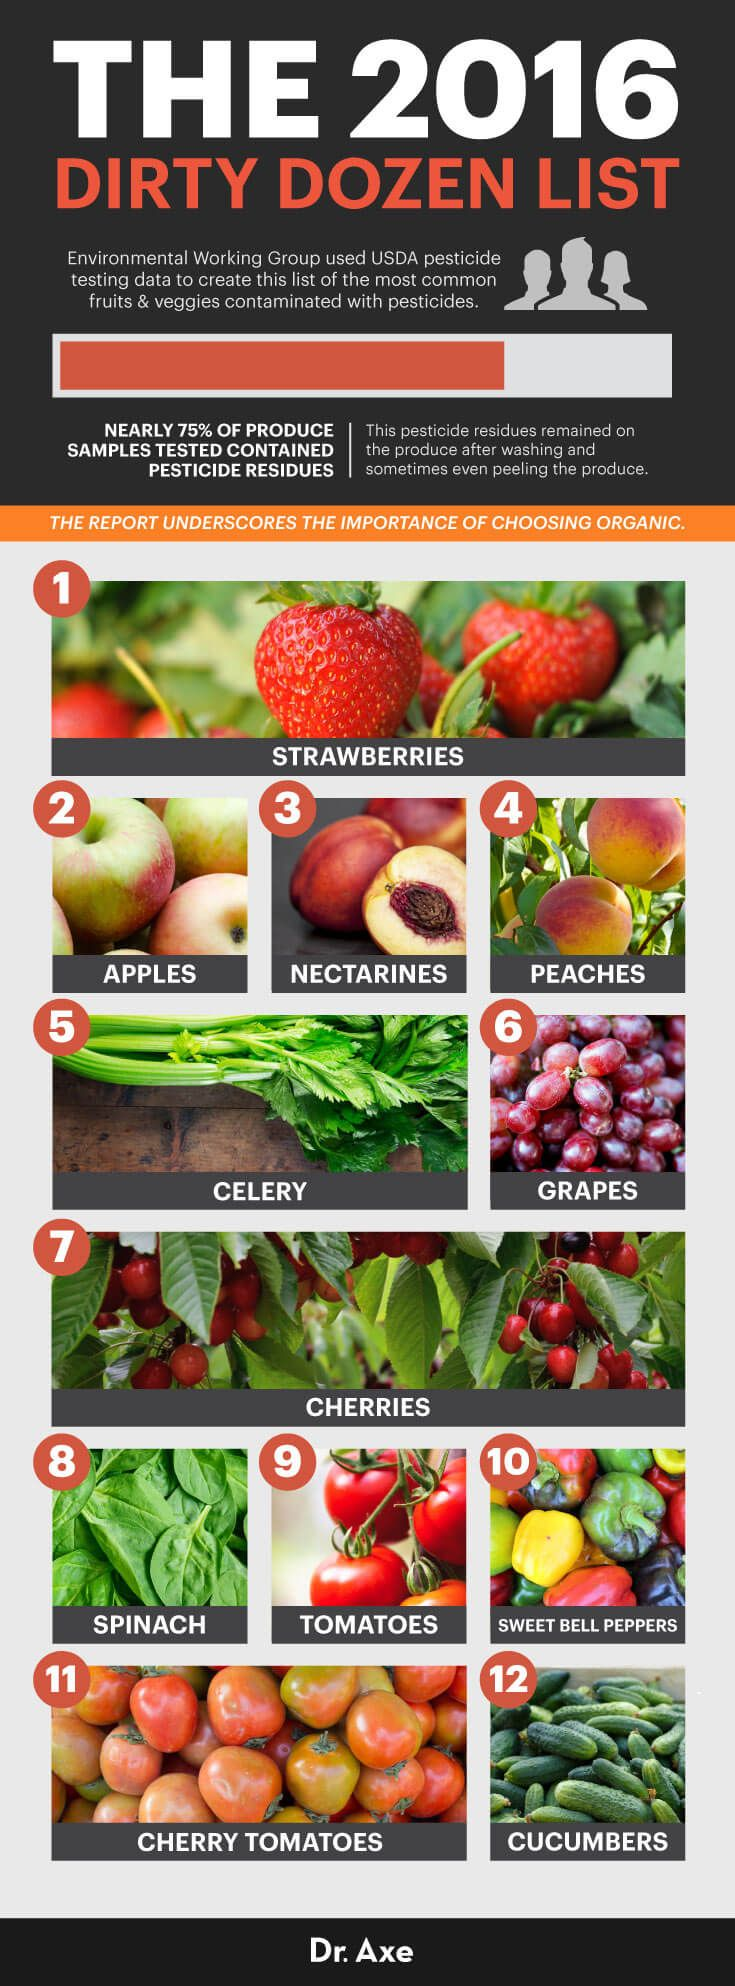 2016 Dirty dozen graphic - Dr. Axe http://www.draxe.com #health #holistic #natural